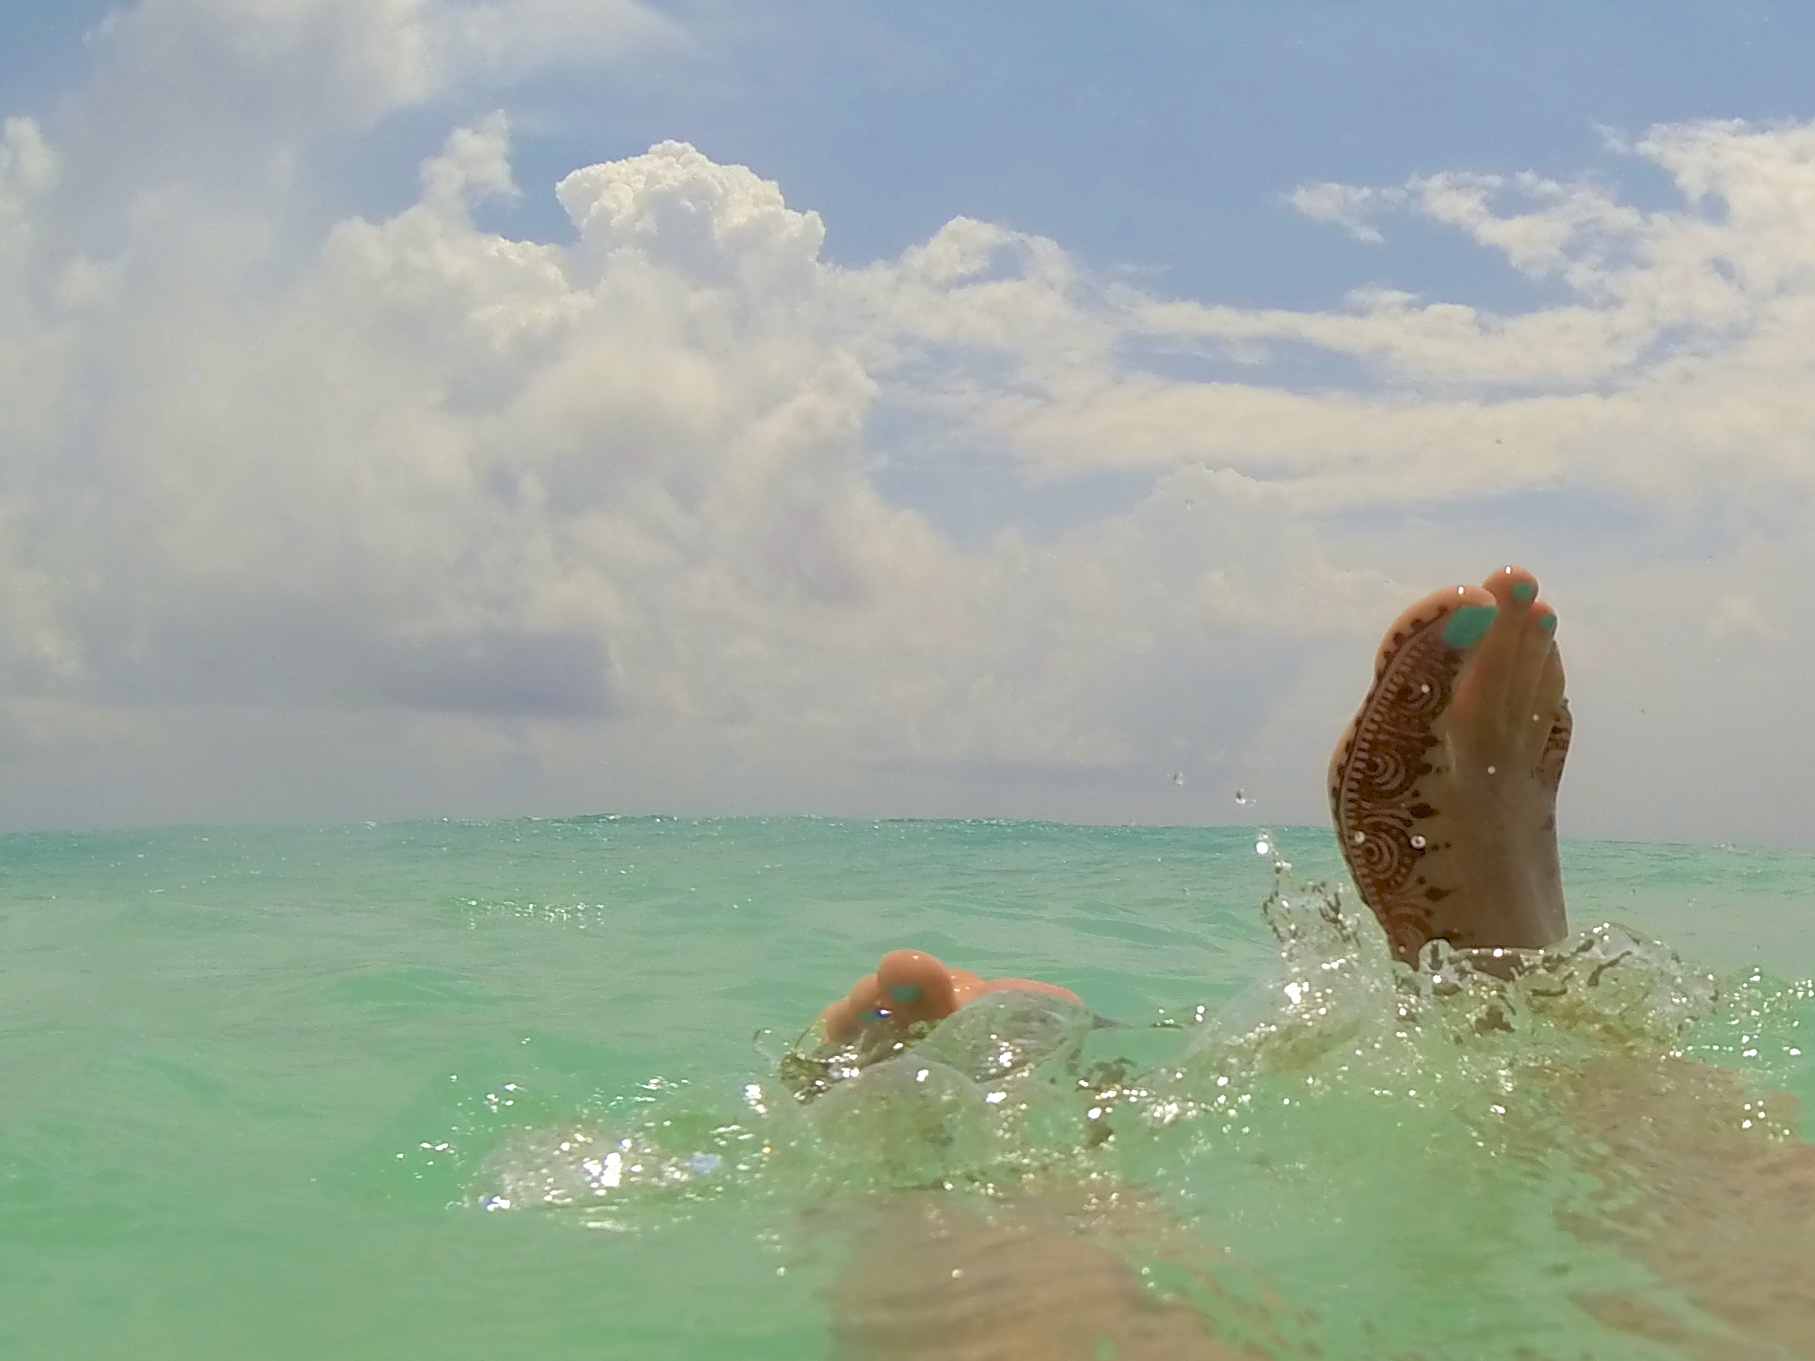 Swimming in the Caribbean